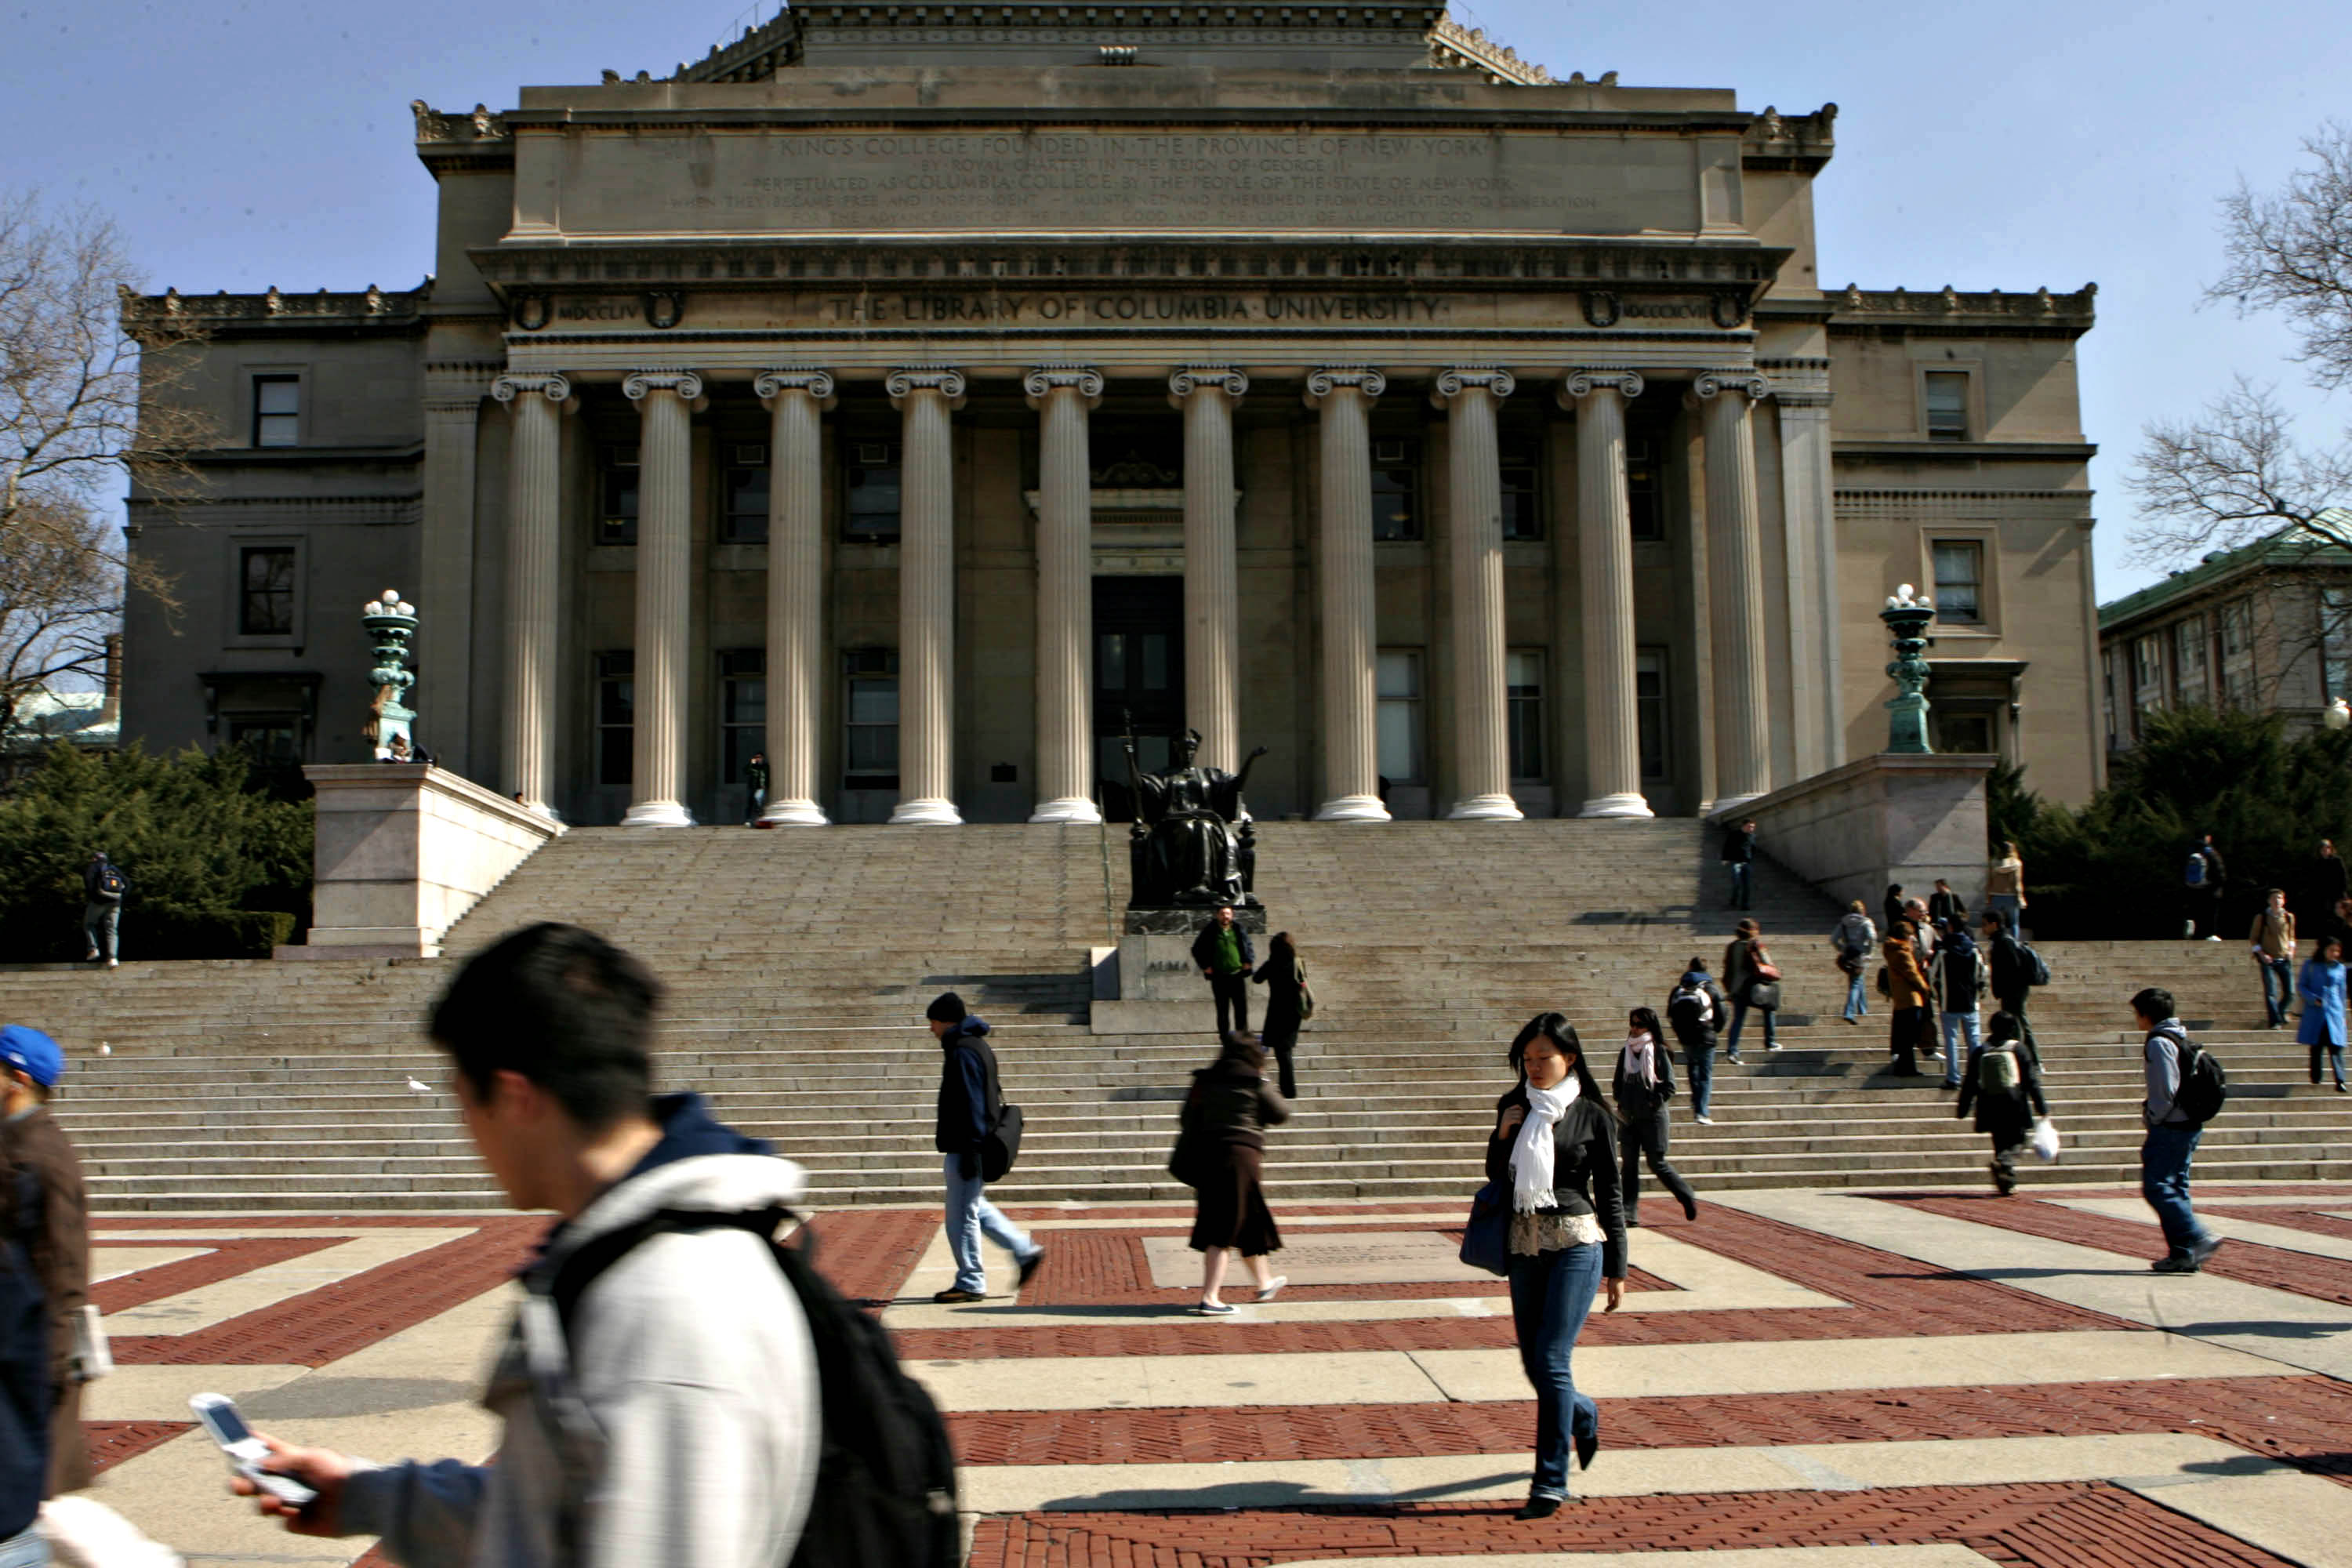 Students walk across the campus of Columbia University in New York City